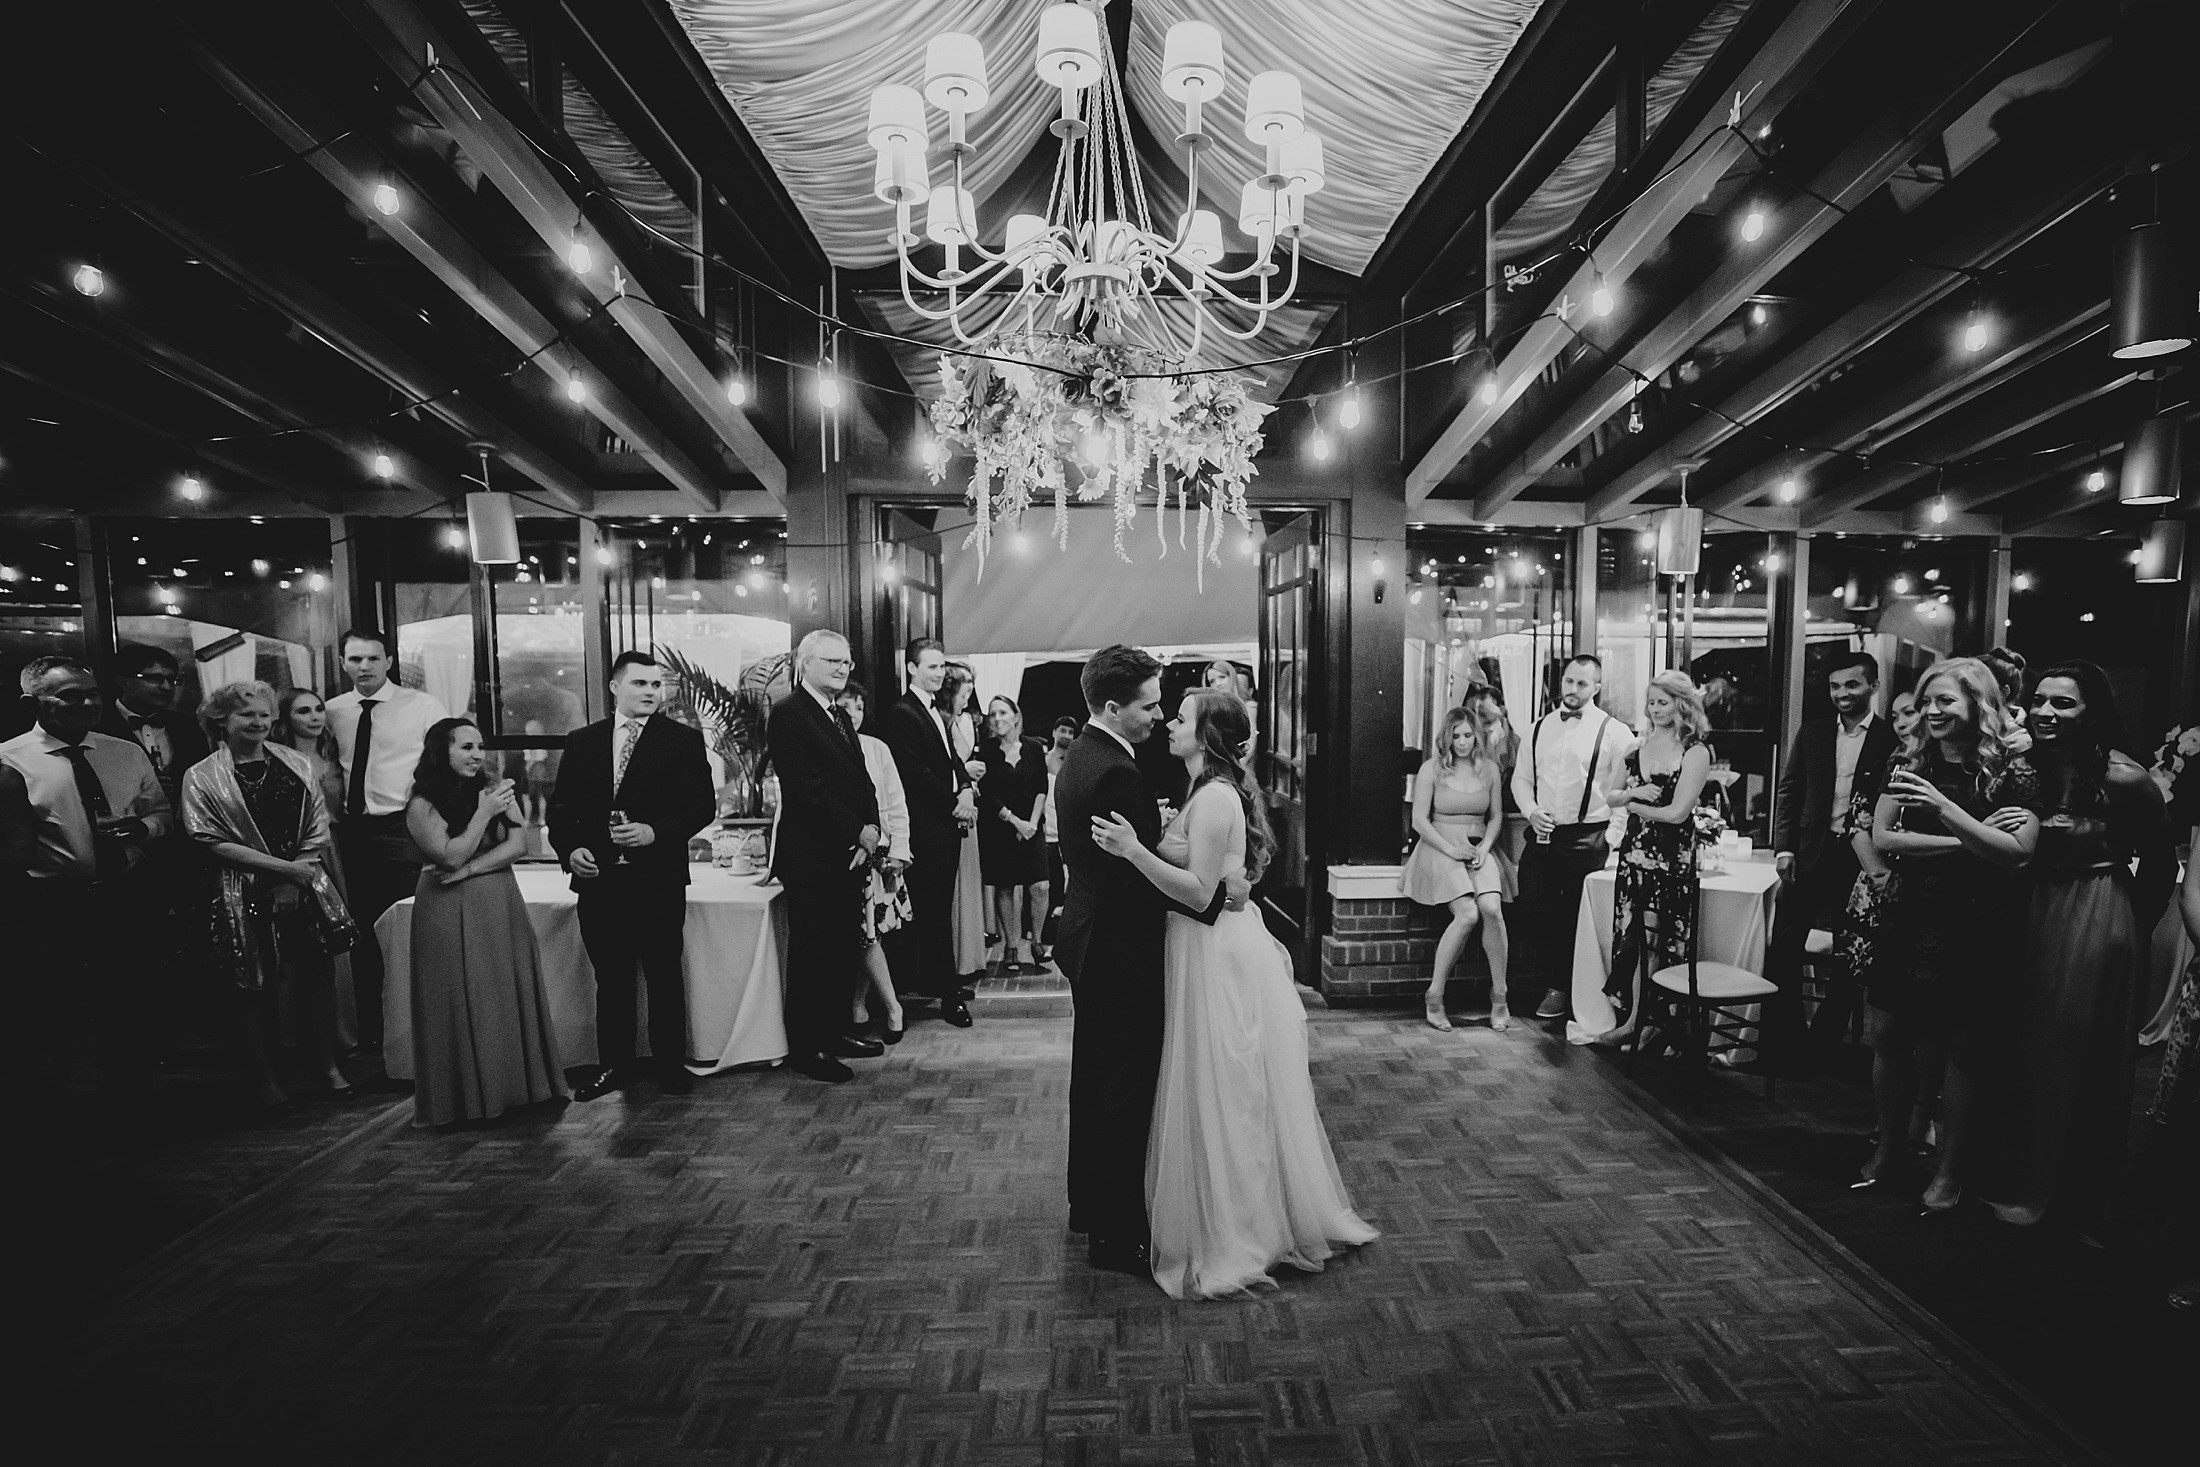 June21.IanEmilie34061_Note Photography Documentary Photographer Wedding Photos Vancouver B.C. Best 2019 2020 Vancouver Island Brock House Restaurant Wedding Jericho Beach Kitsilano.jpg